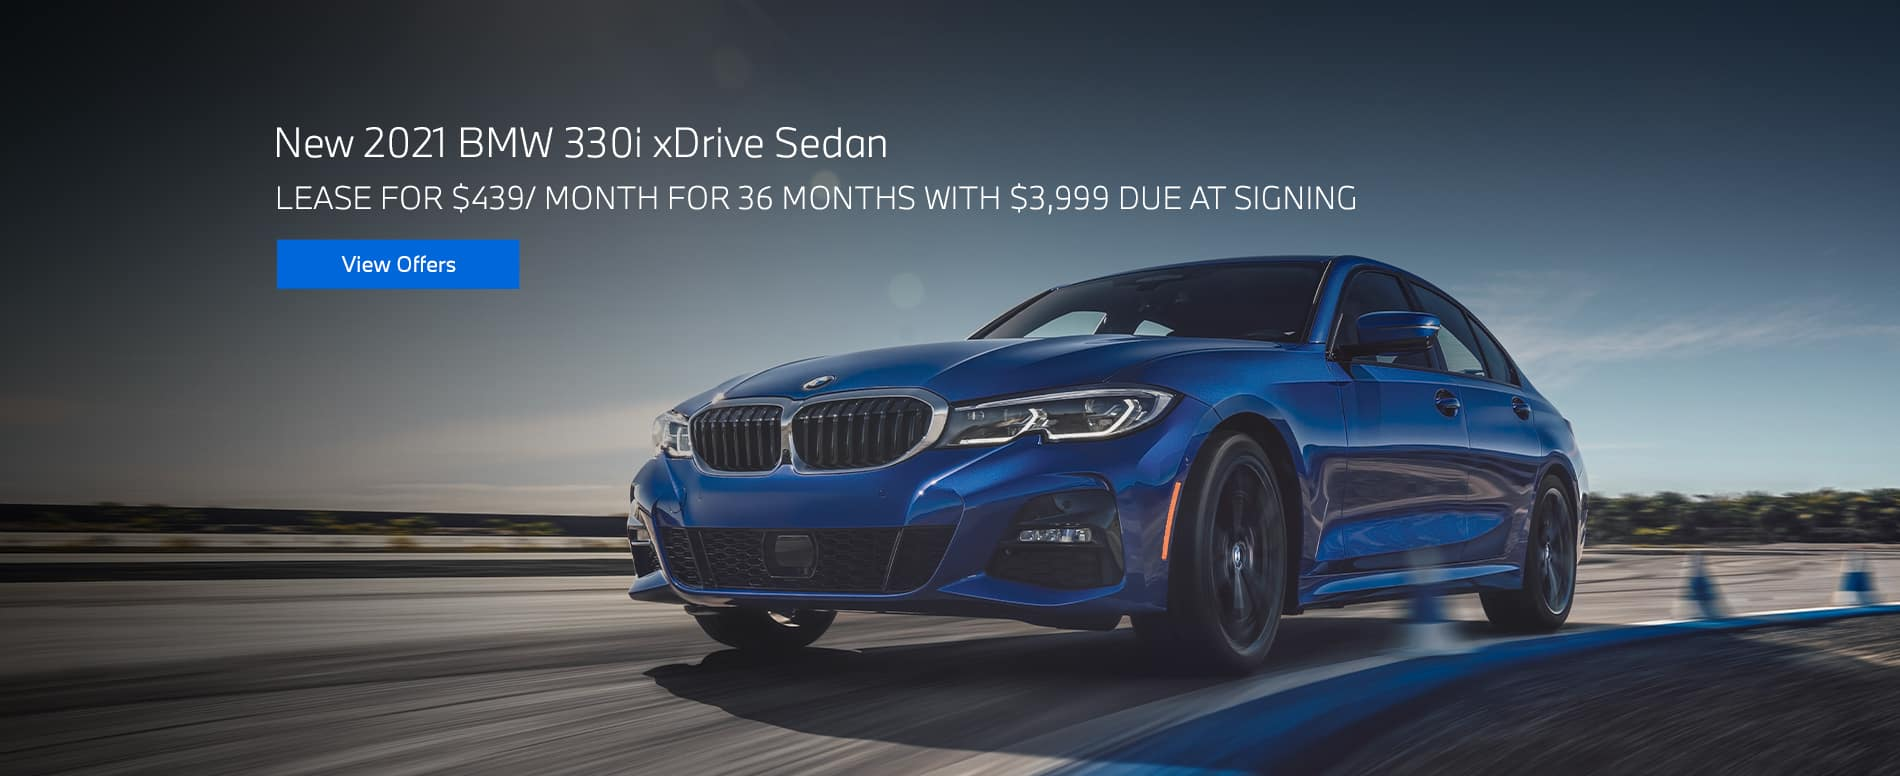 New 2021 BMW 330i xDrive Sedan $439/mo. for 36 months $3,999 due at signing